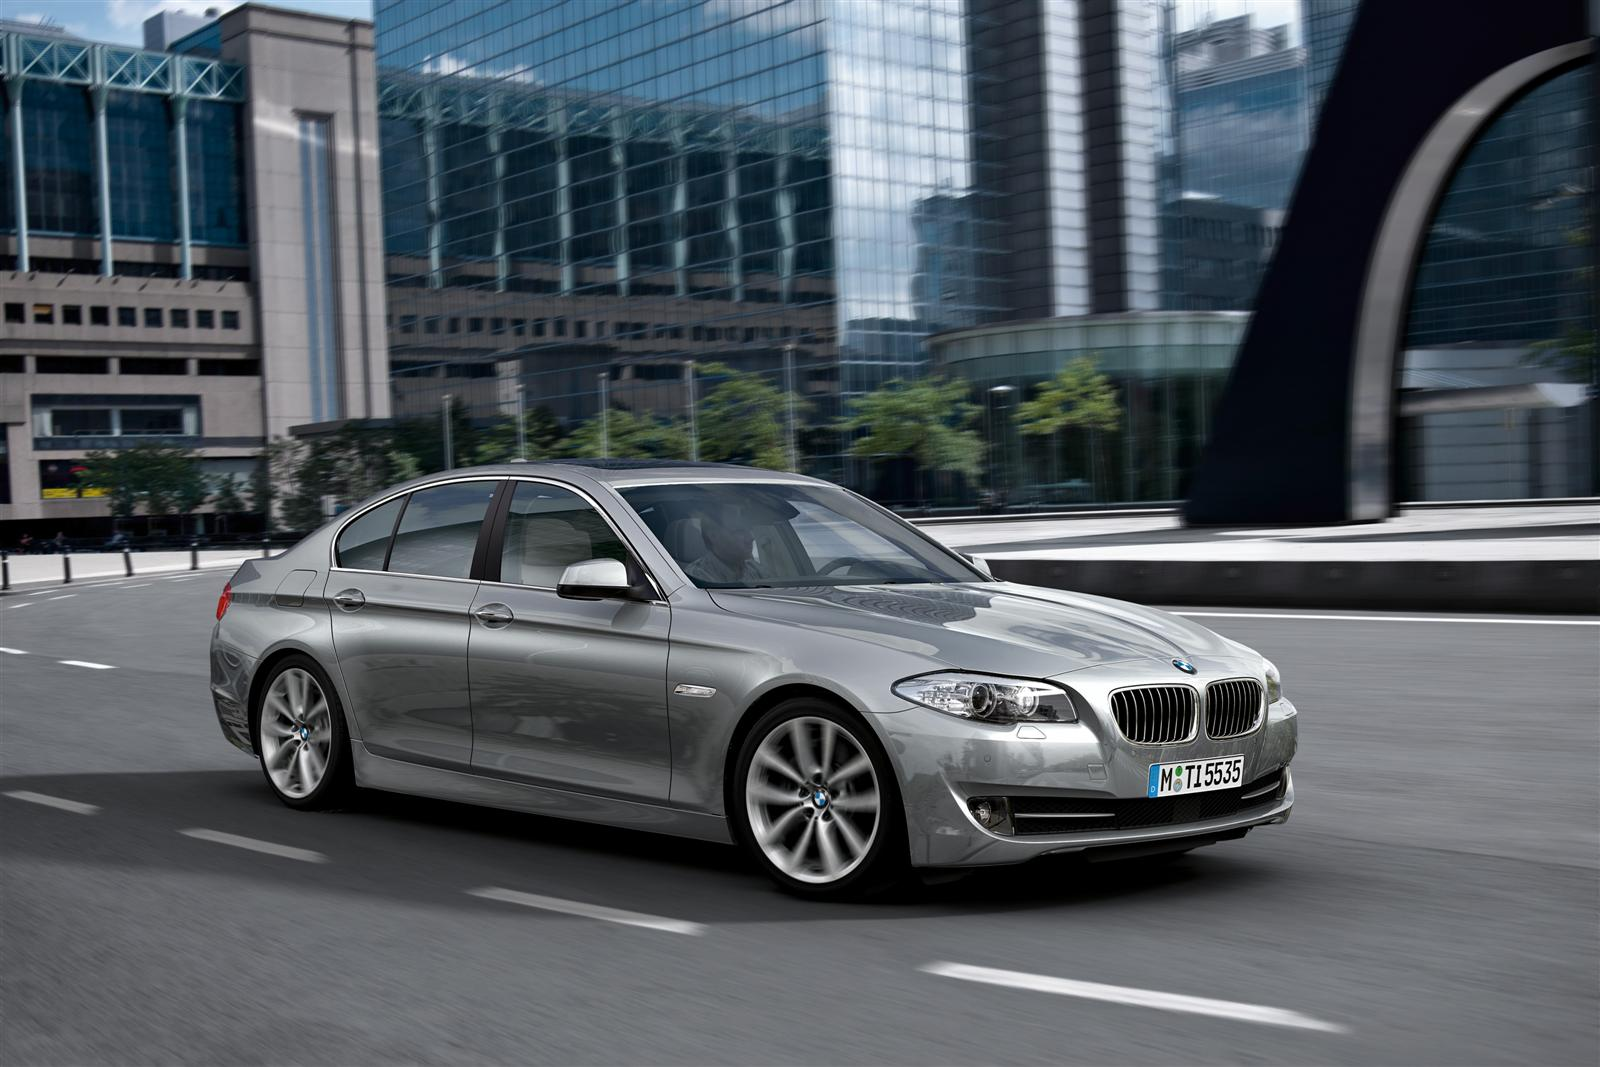 bmw heaven specification database specifications for bmw 525d f10 m sedan 2010 now. Black Bedroom Furniture Sets. Home Design Ideas